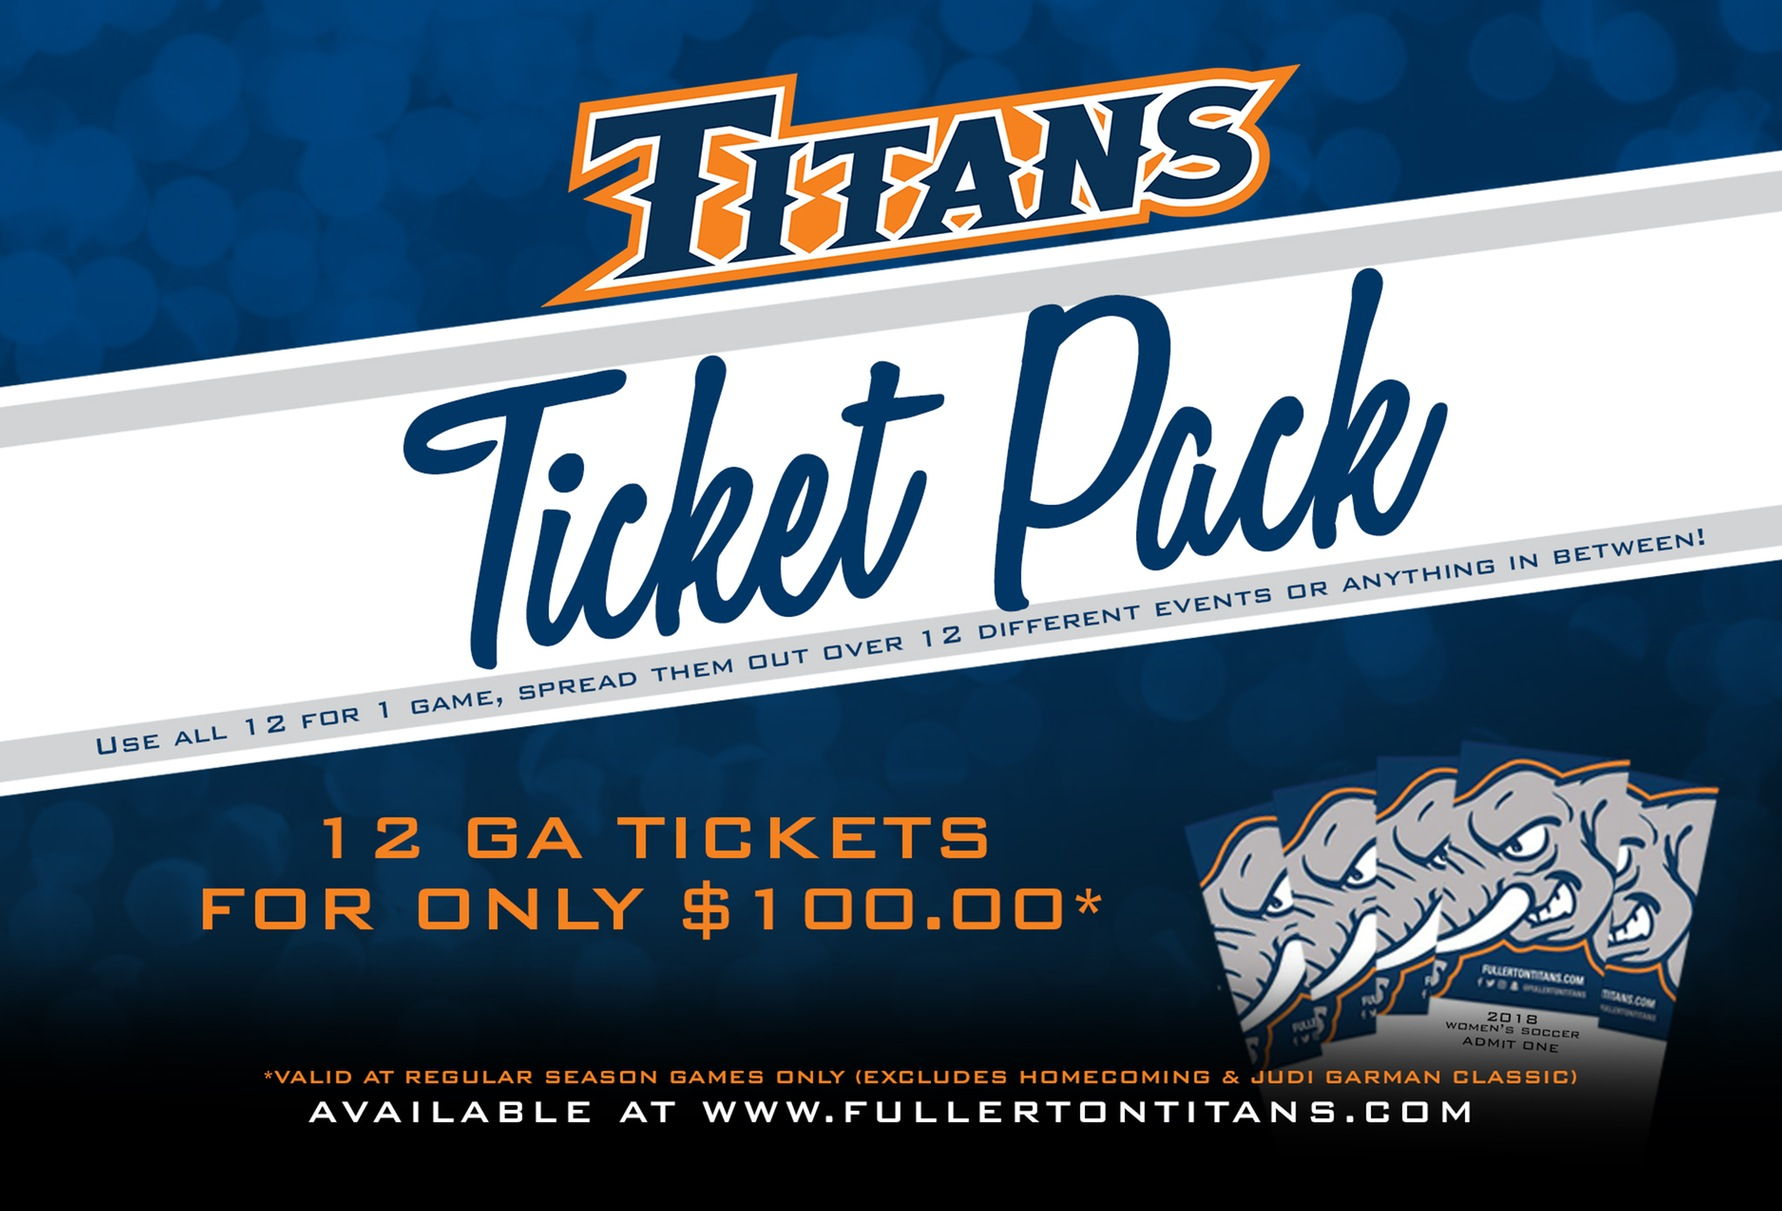 Titan Ticket Packs On Sale Now